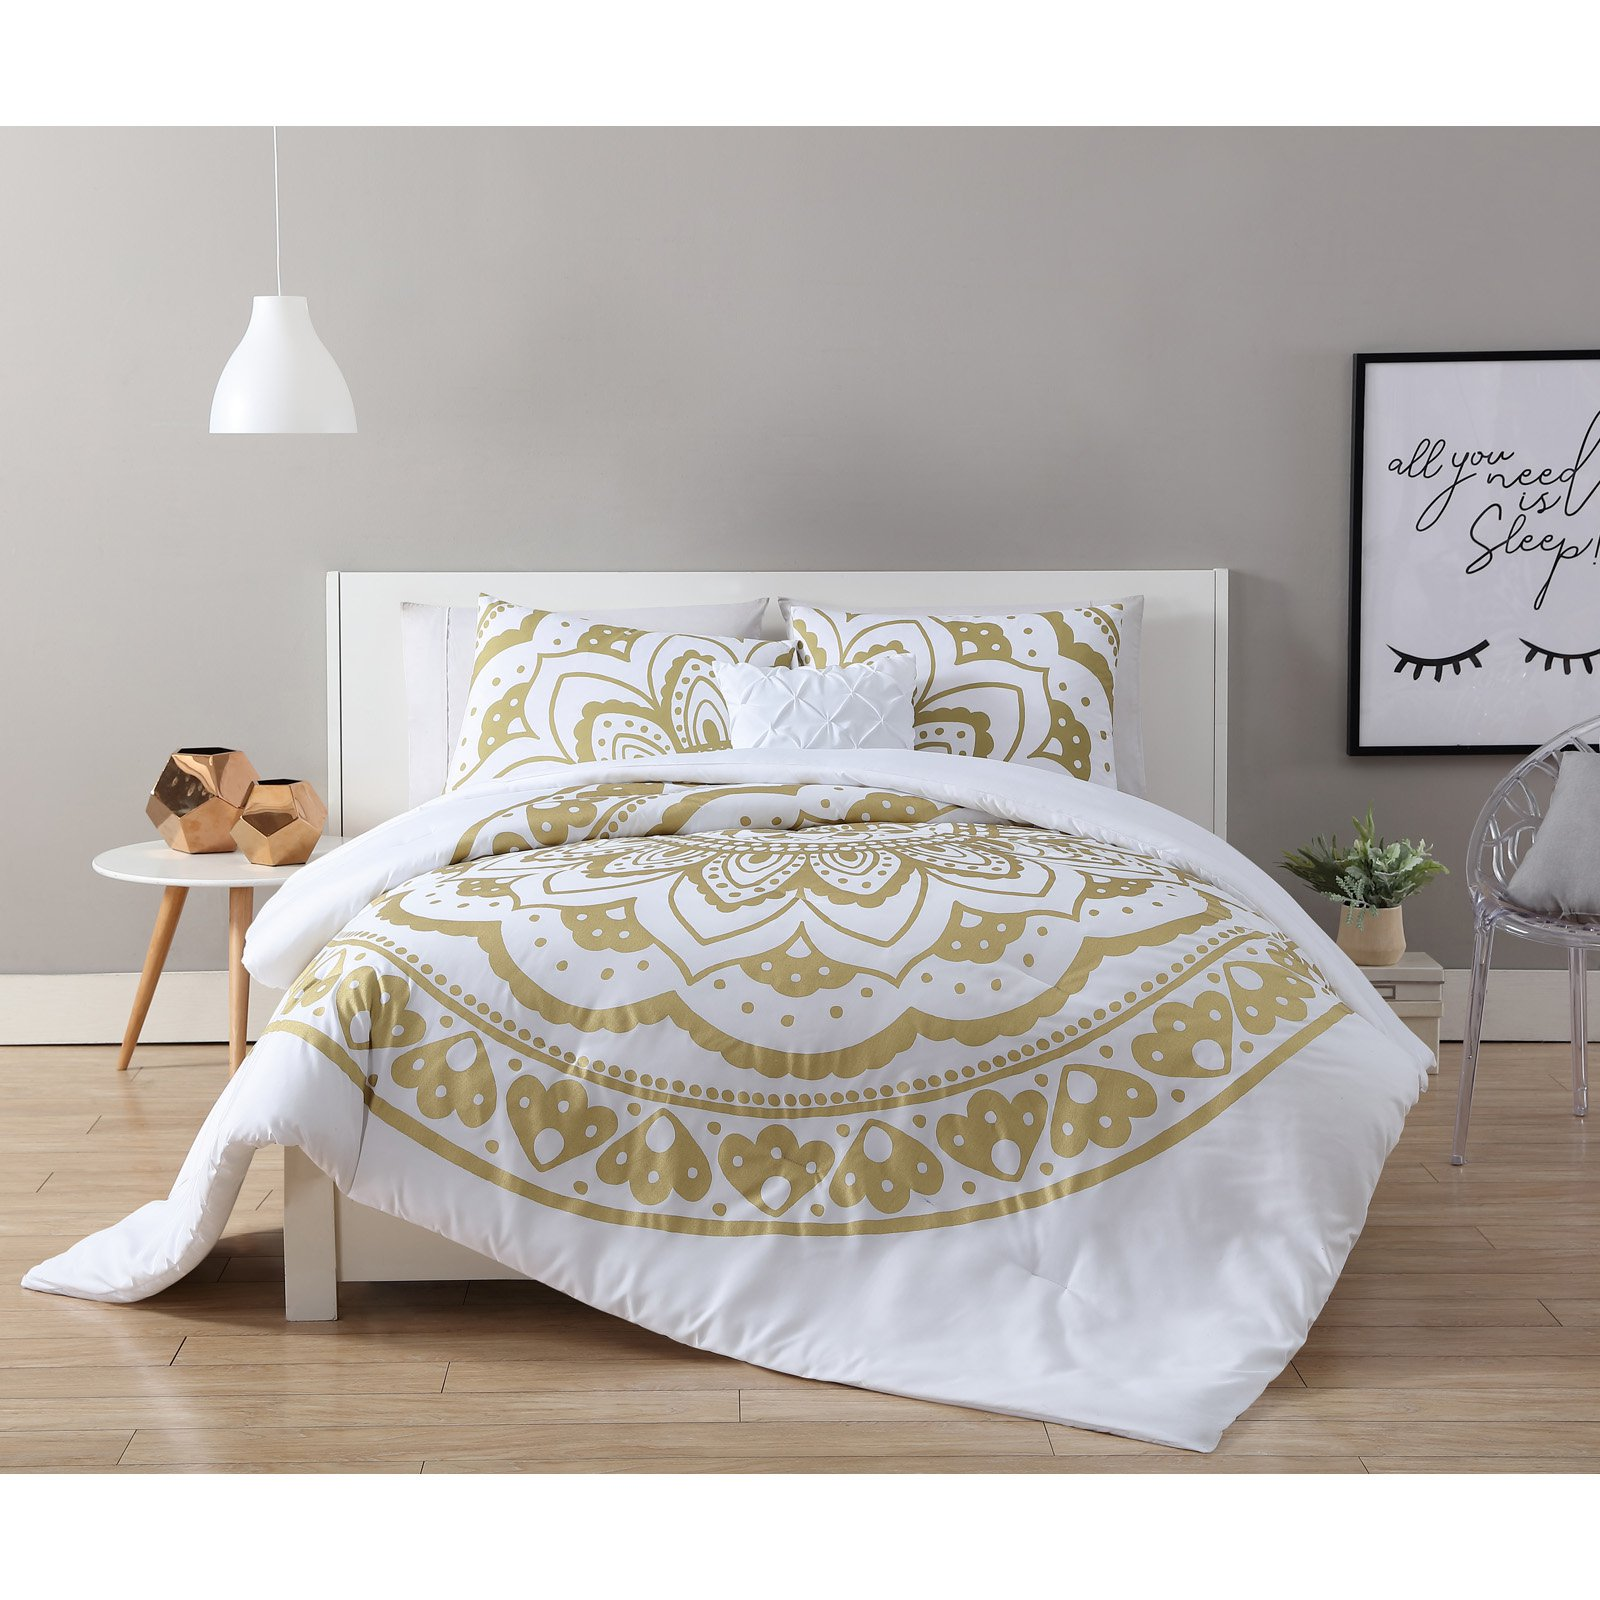 VCNY Home Karma Gold/White 3/4-Piece Duvet Cover Bedding Set, Shams and Decorative Pillow Included